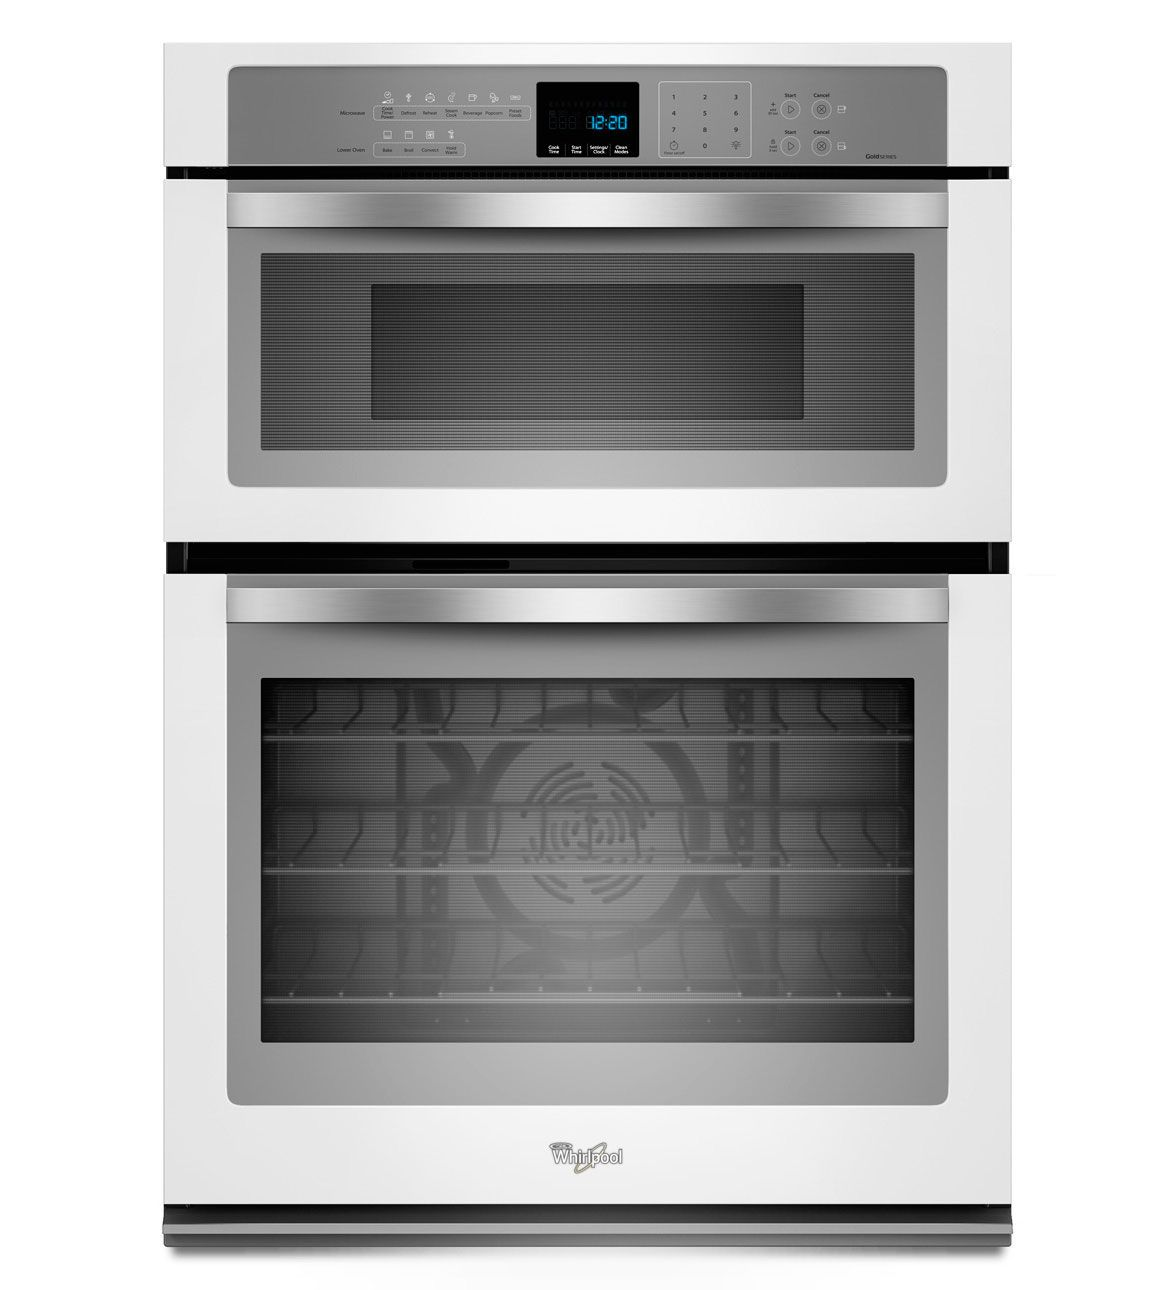 Whirlpool Microwave Convection Oven Recipes: Whirlpool 5.0 Cu. Ft. Combination Microwave Wall Oven With